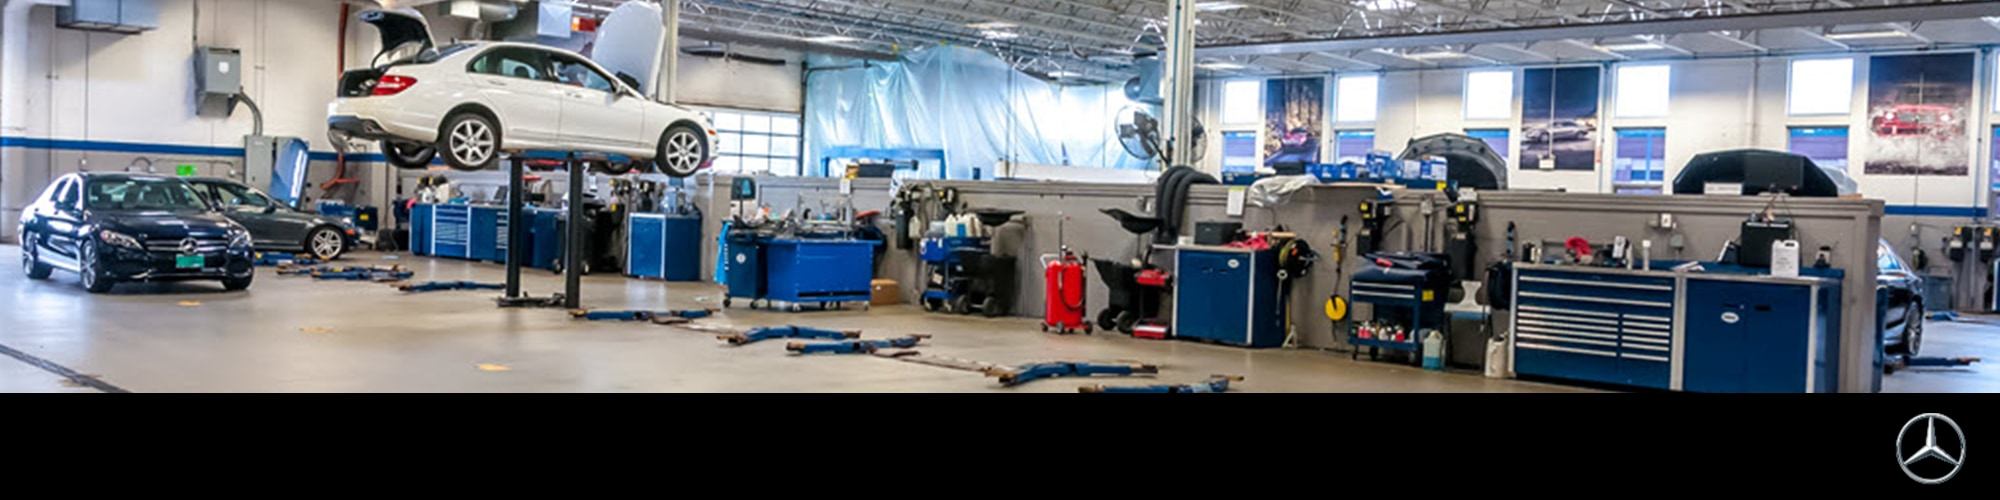 Lovely Visit Our Mercedes Benz Service Center At Knauz Continental Autos, Serving  Waukegan, Gurnee, Deerfield And Buffalo Grove